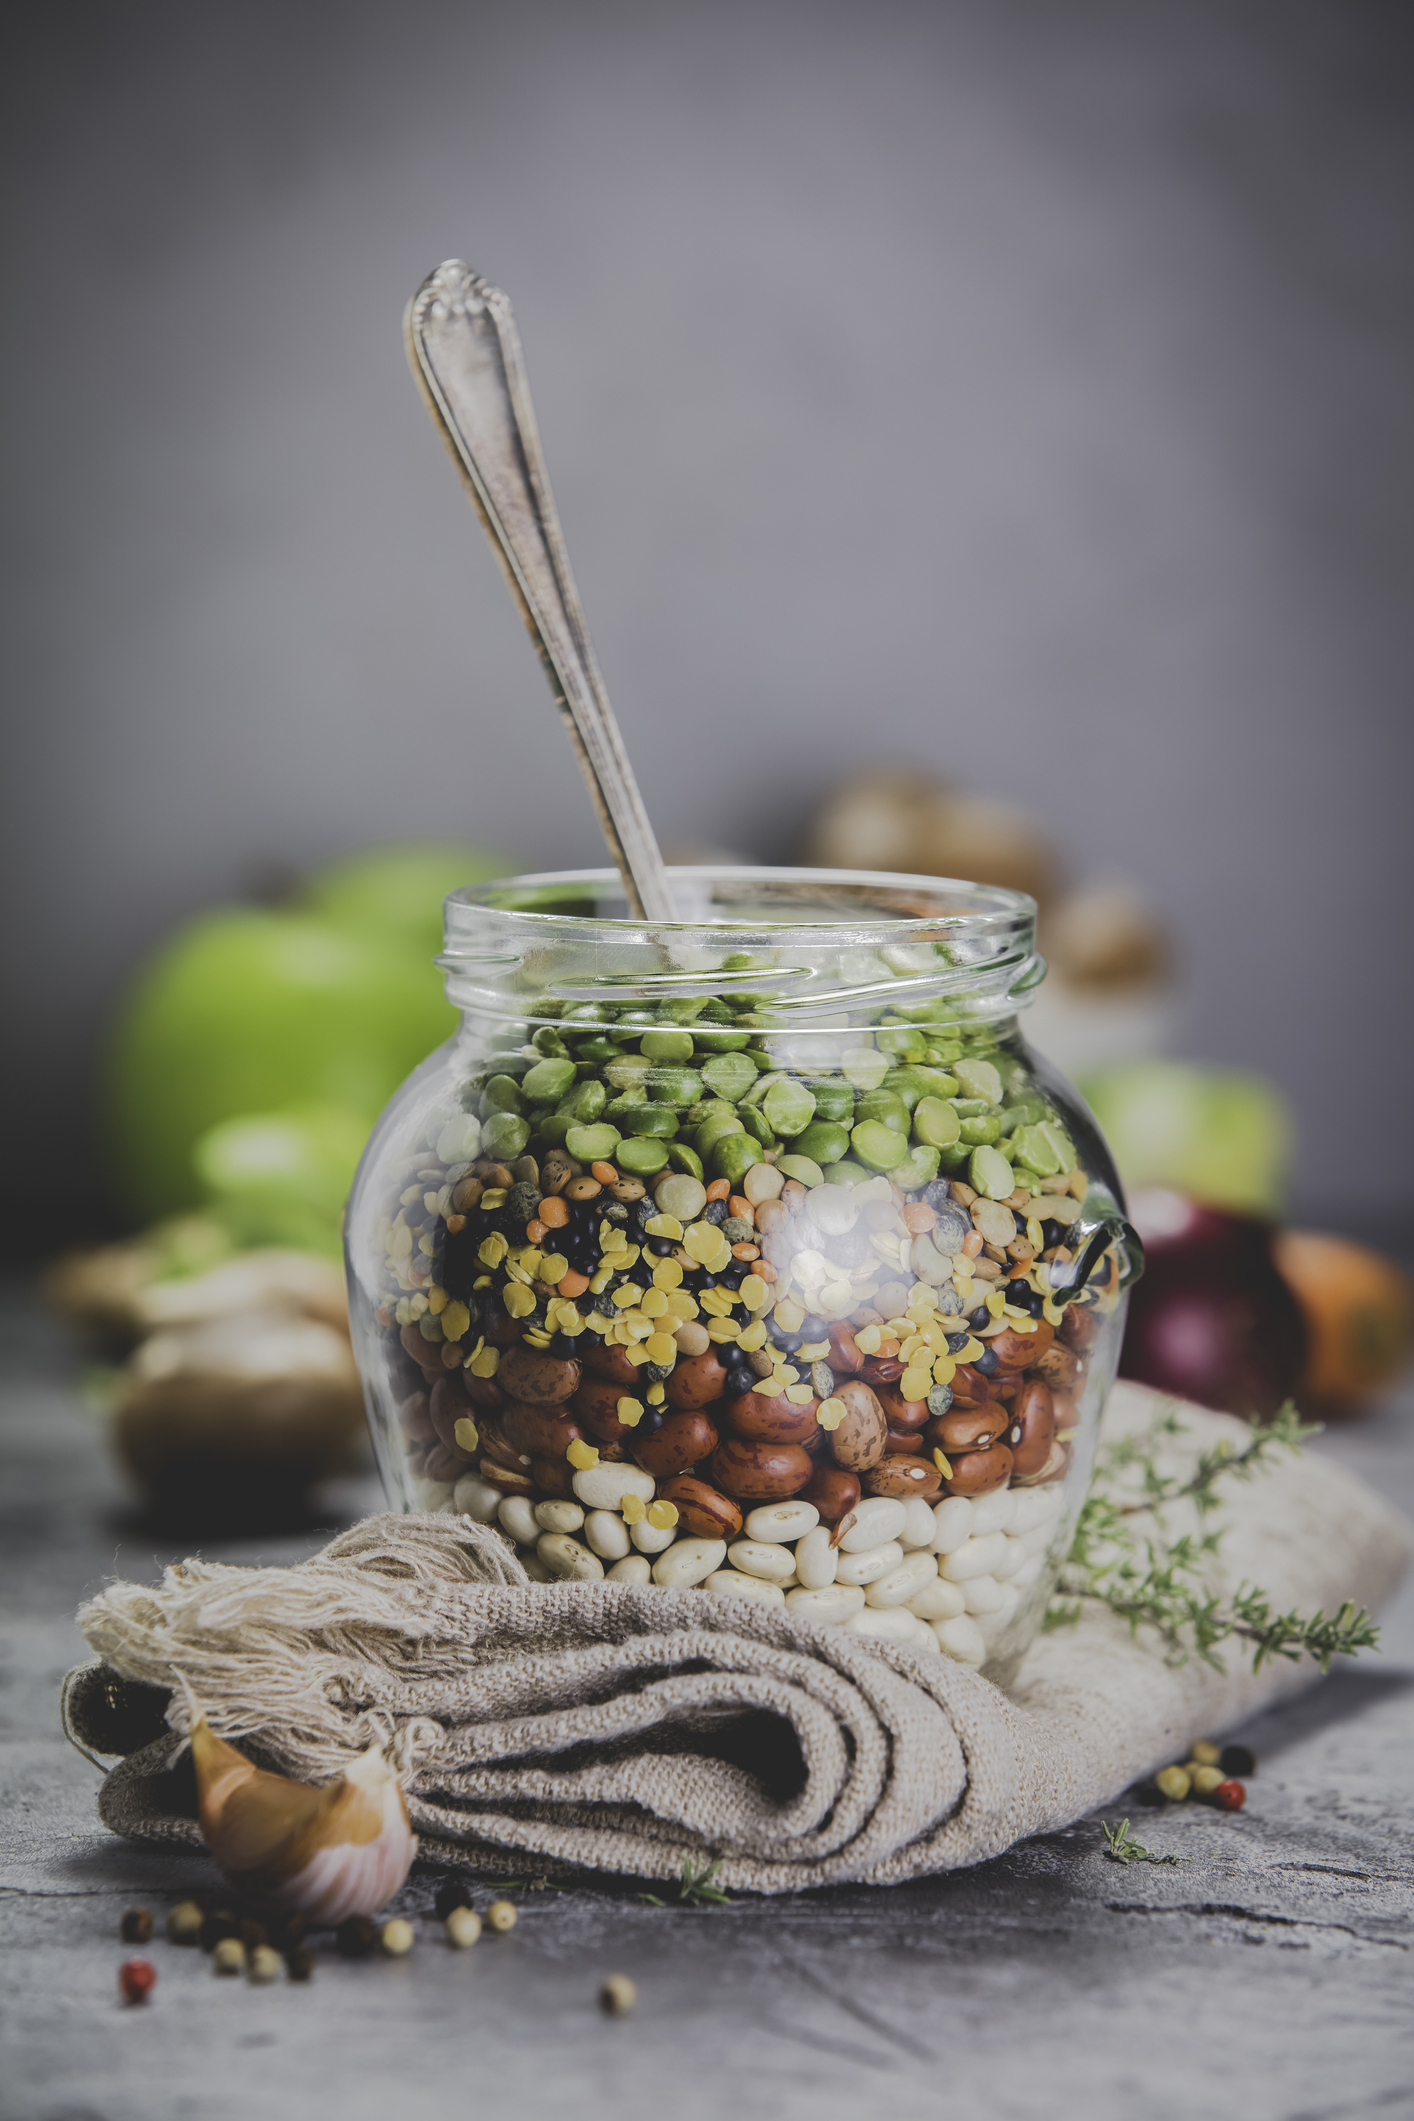 Legumes - lentils chickpeas beans green peas in a glass jar and raw vegetables. Vegan protein source. Vegetarian and healthy food concept